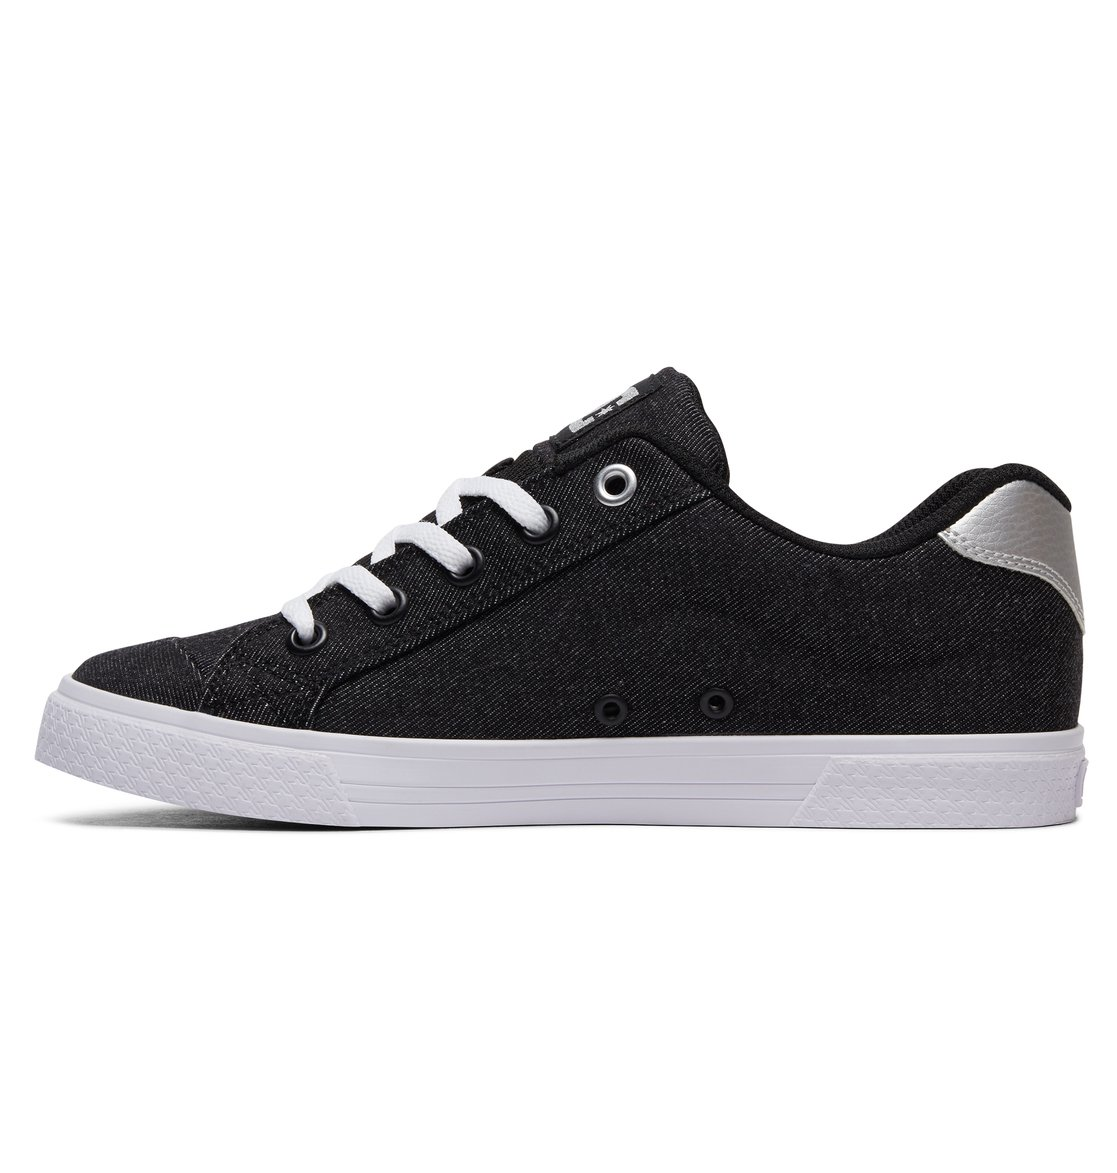 Chaussures DC Shoes Heathrow SE noires Casual fille neodcac